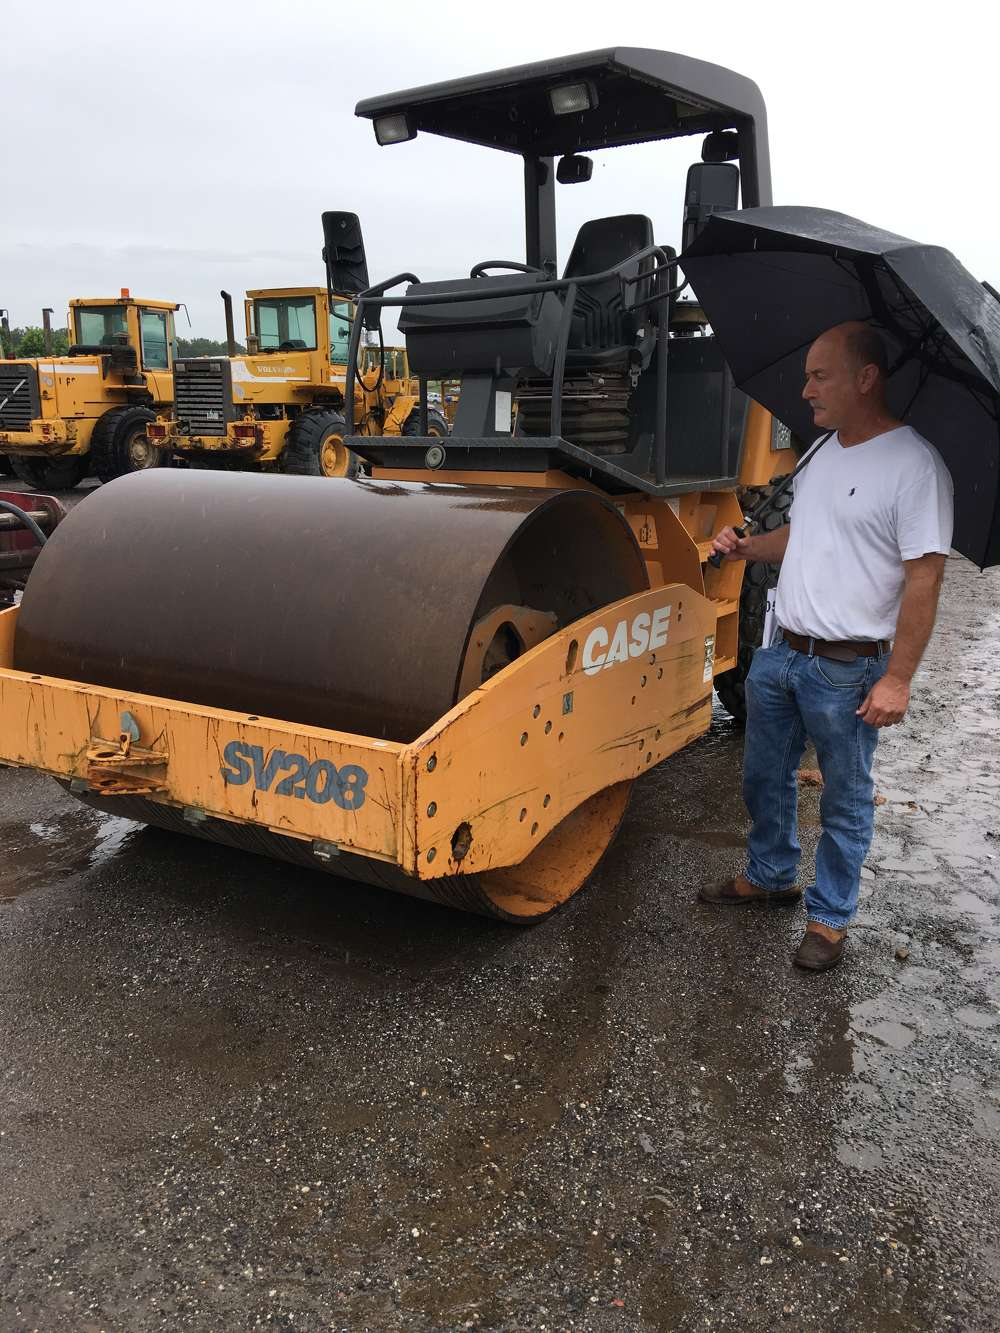 Mike Bell of Palmetto Machinery in Greeleyville, S.C., looks over this Case SV208 roller.